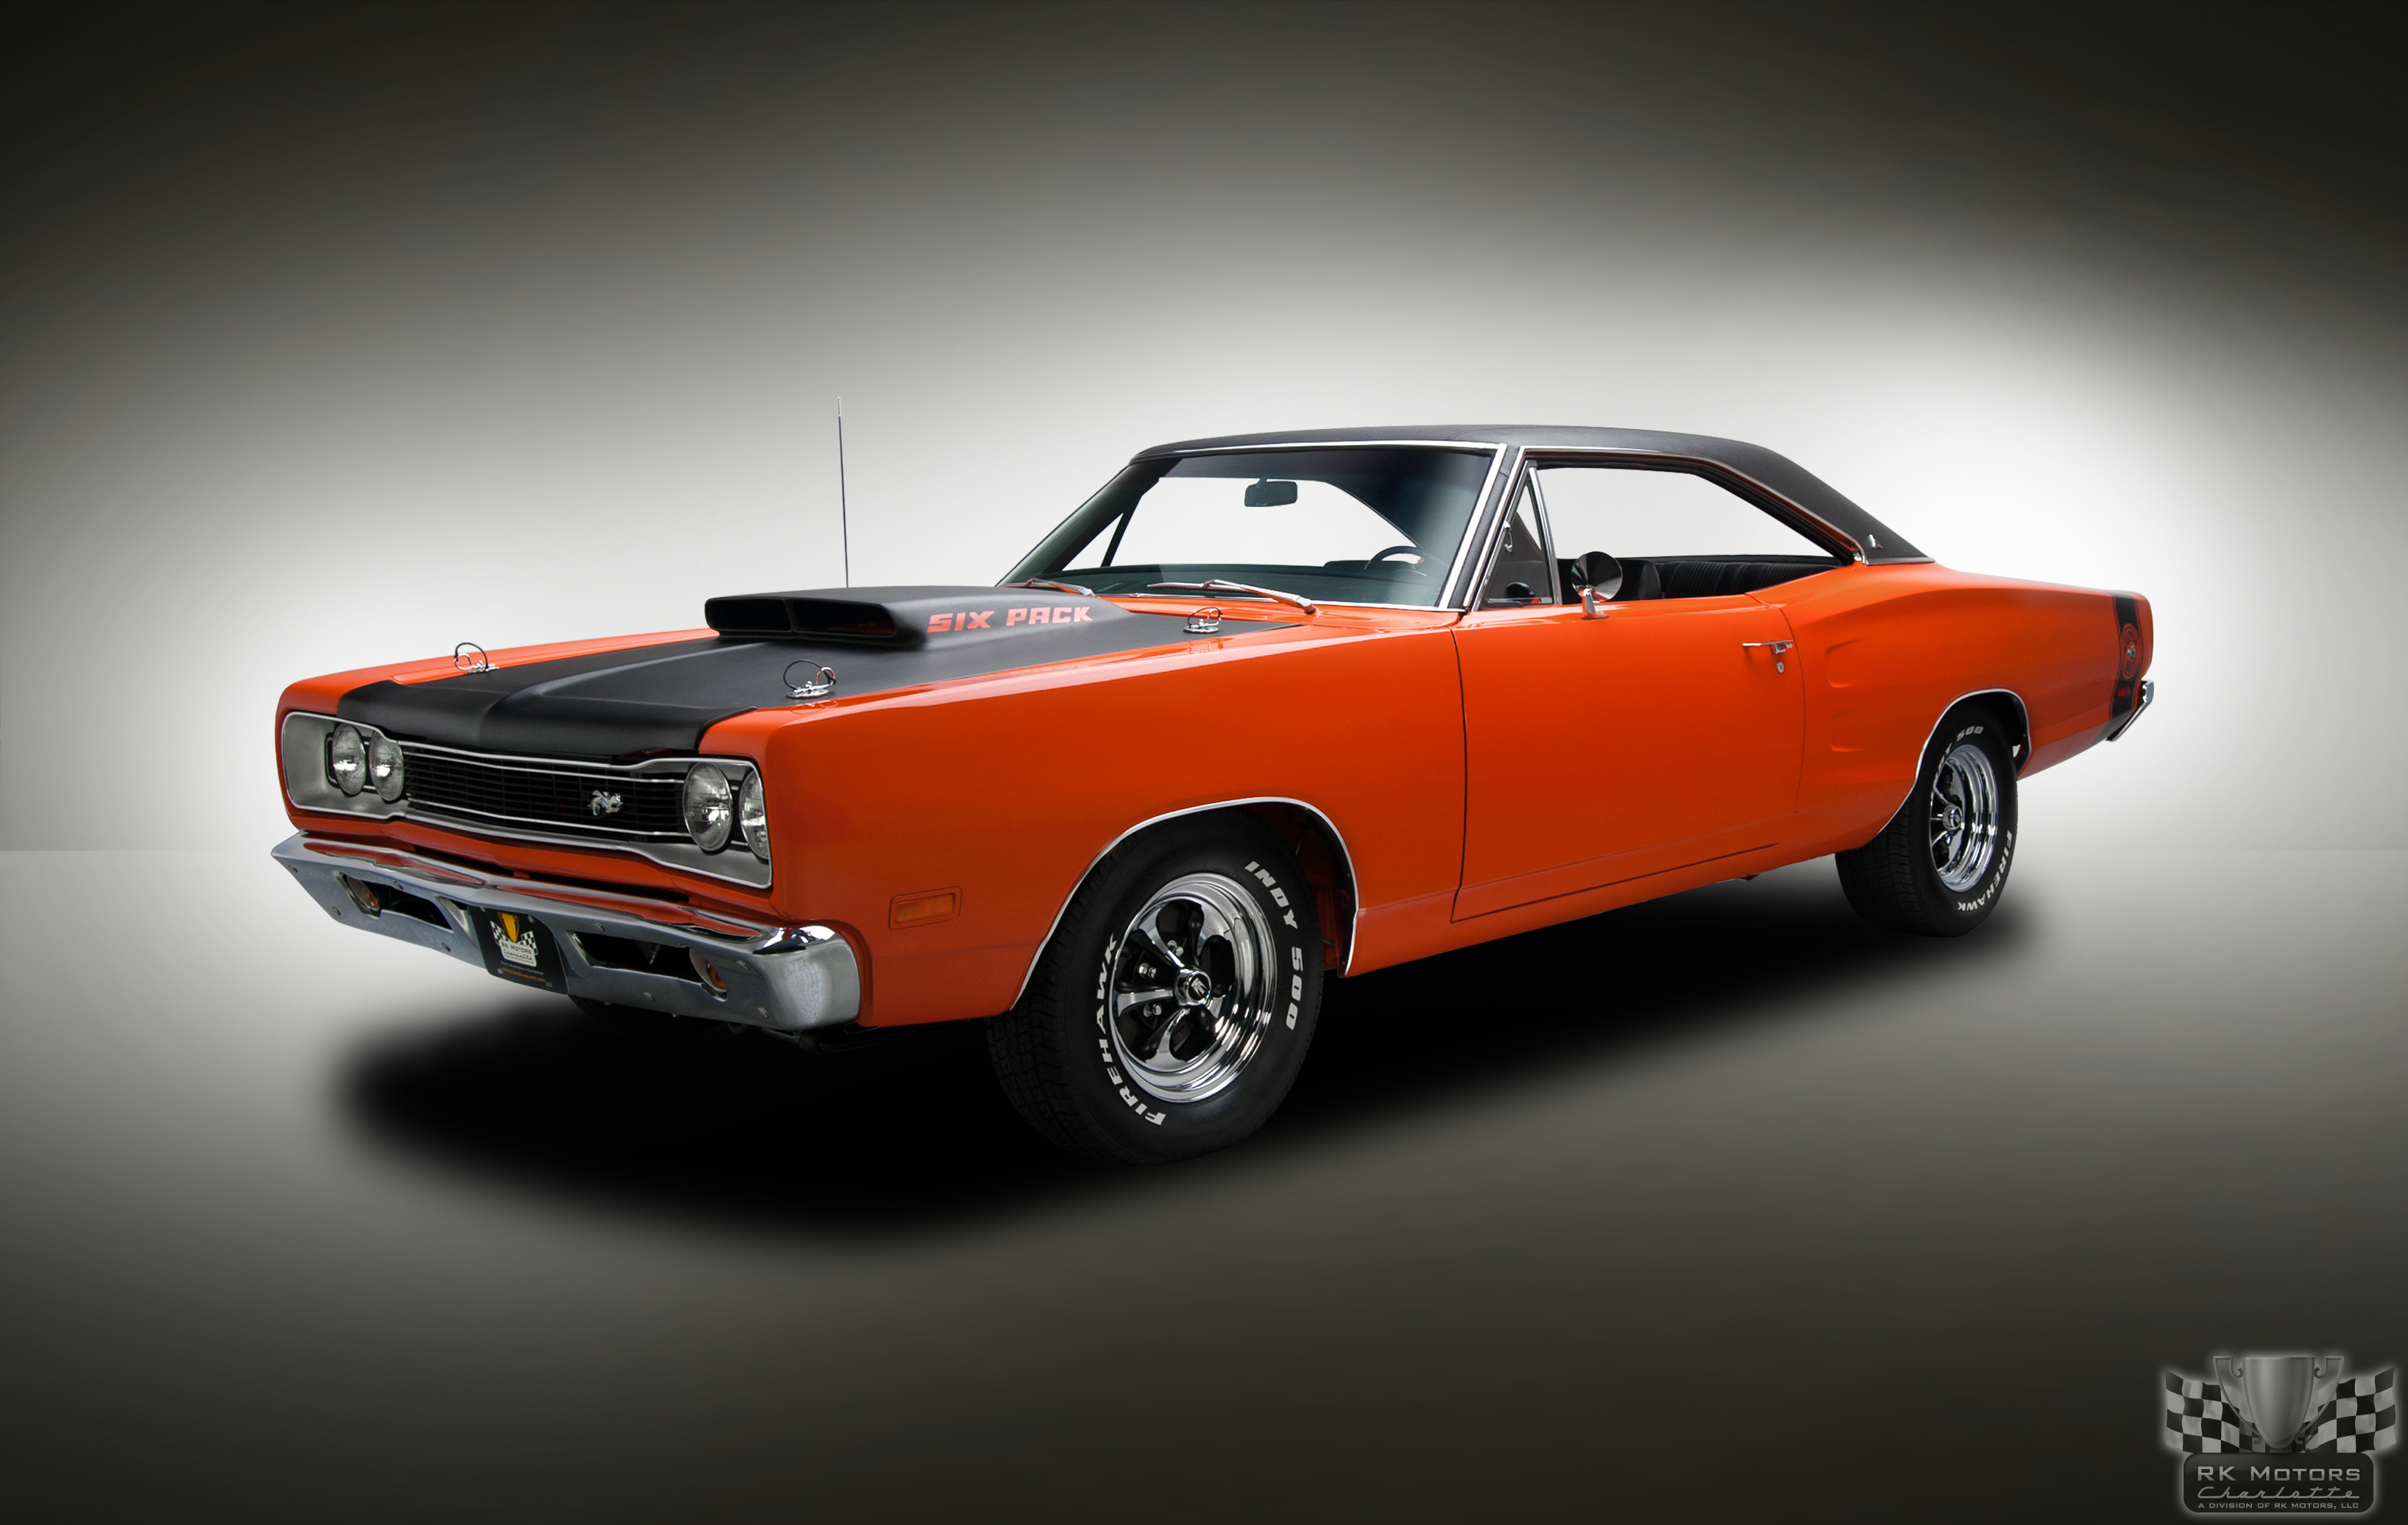 Fast And Furious Cars Hd Wallpapers 1969 Dodge Coronet A12 Super Bee Musclecars Hot Rods